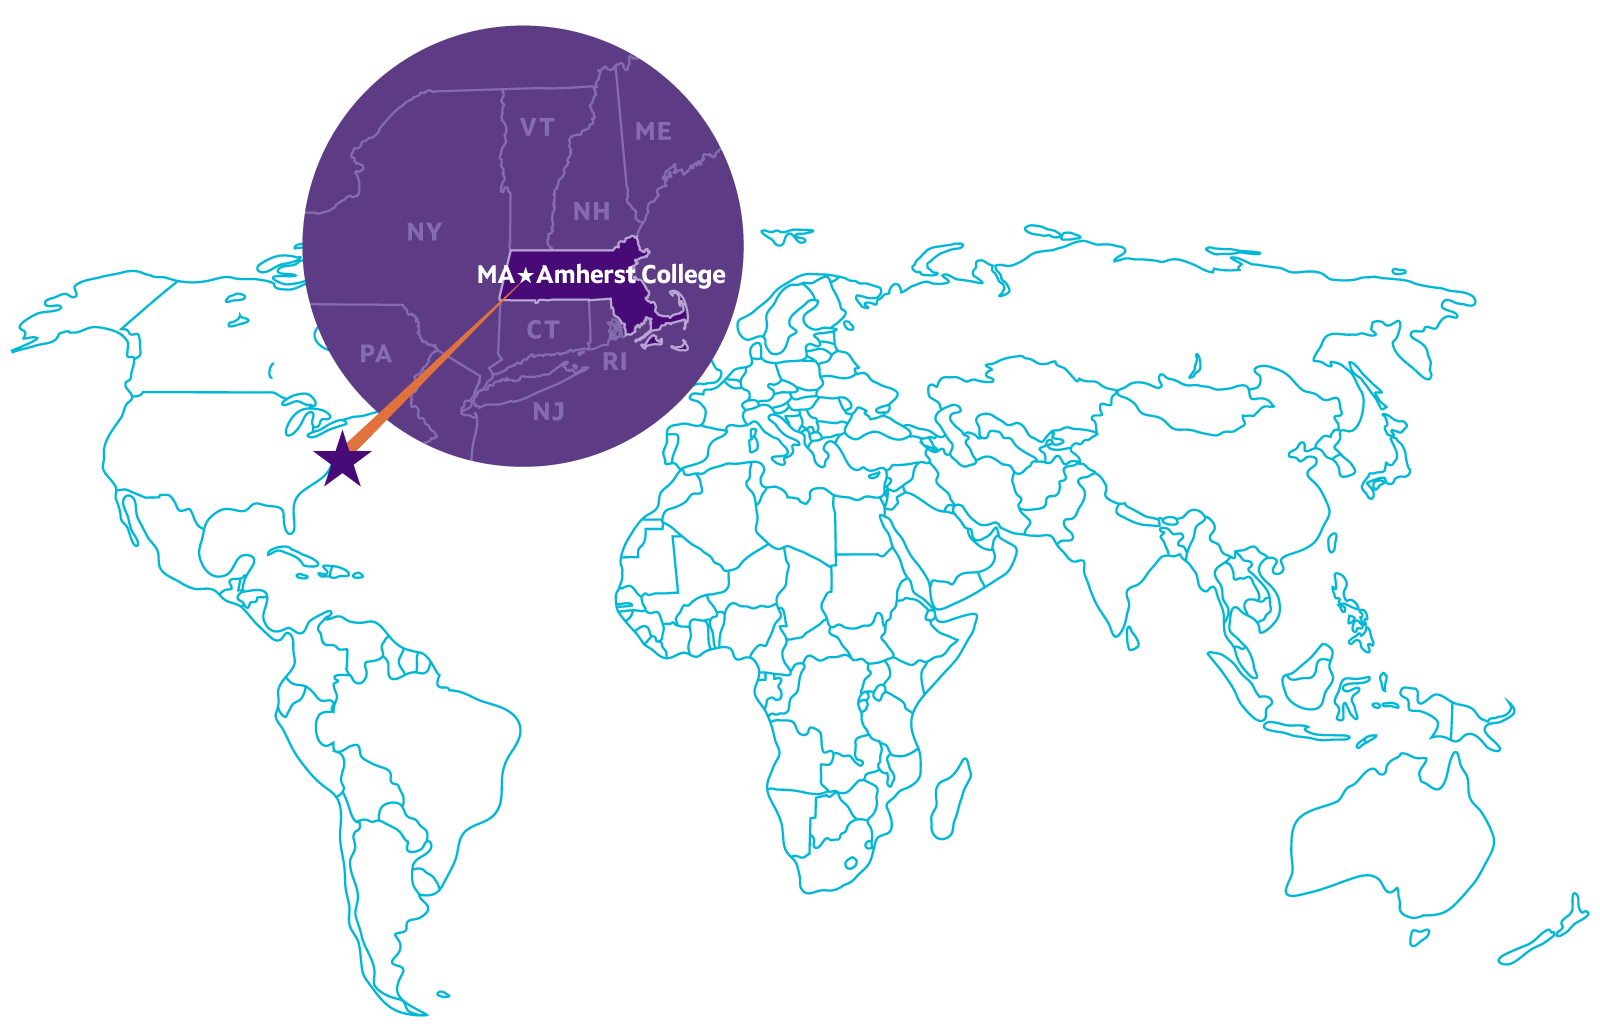 Massachusetts and Amherst College on world map